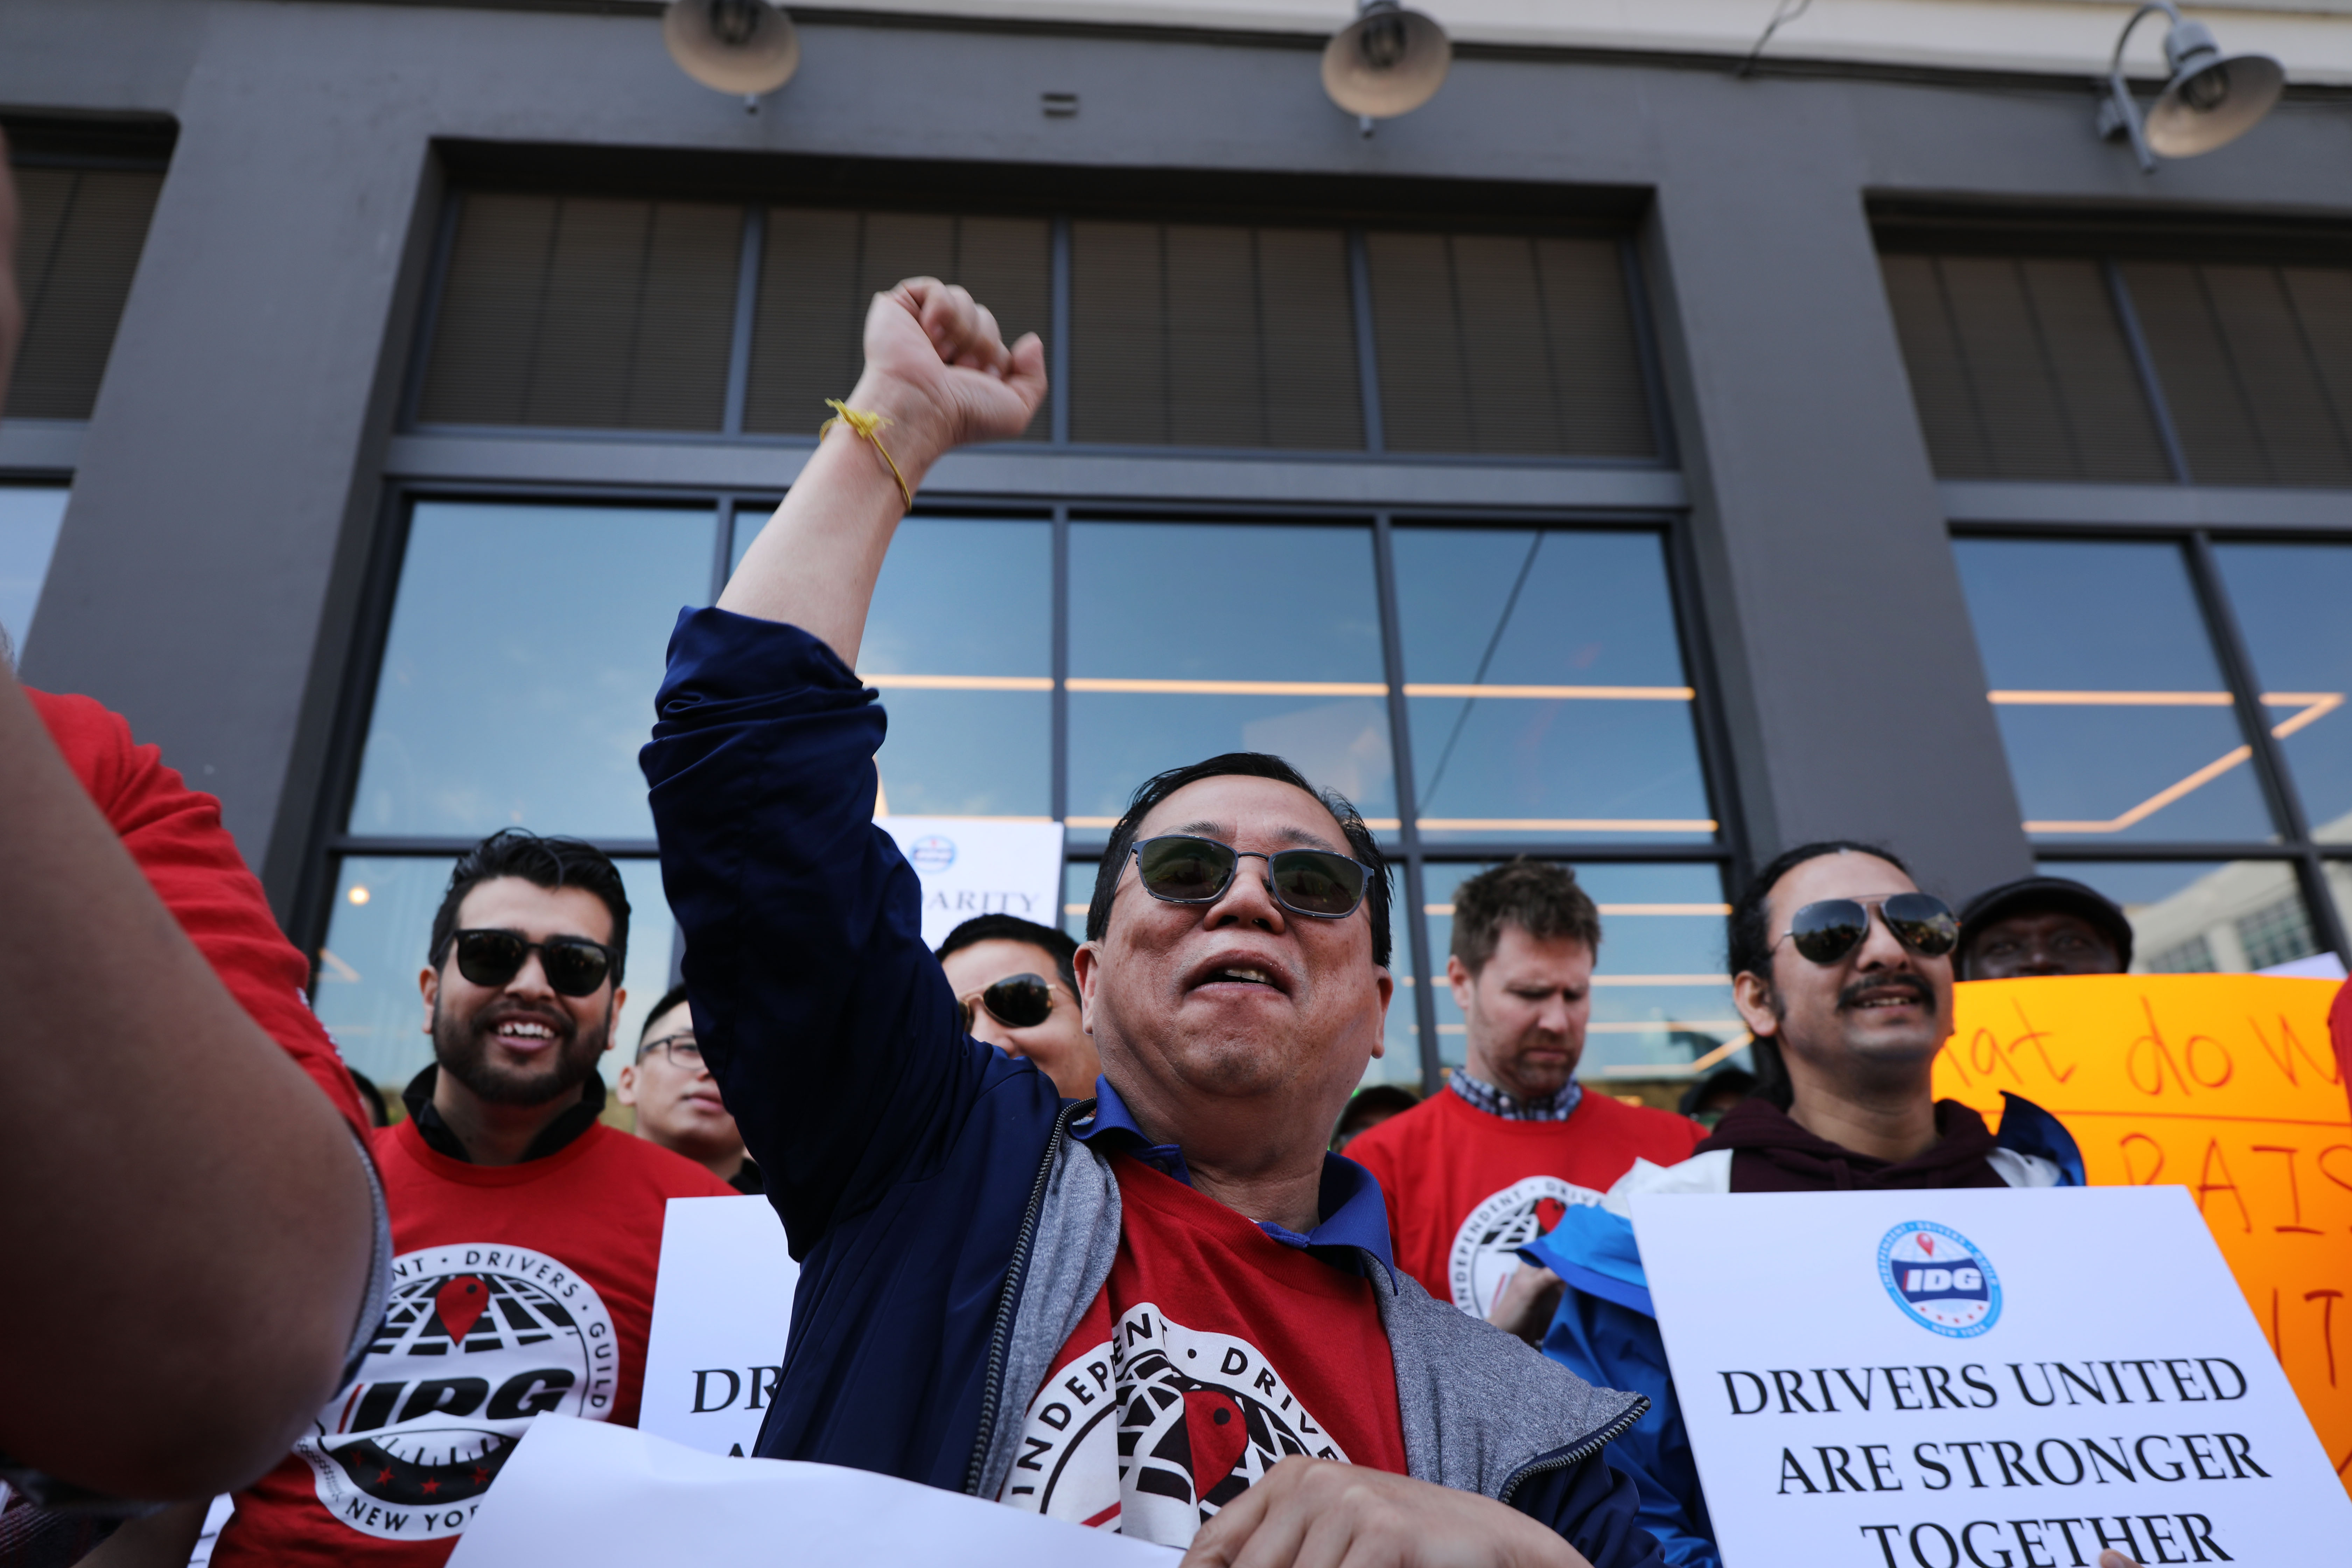 """A ride-share driver at a rally raises his fist while another holds a sign that reads, """"Drivers united are stronger."""""""